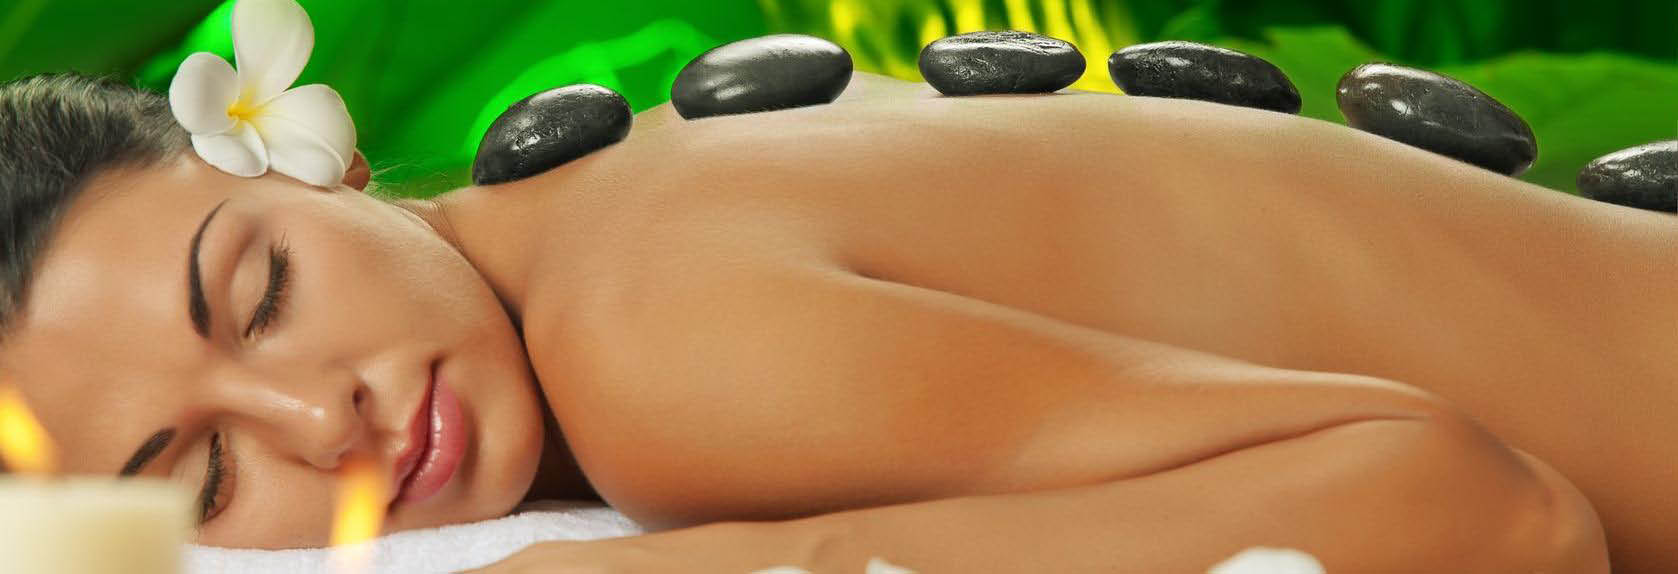 Woman relaxing with hot stone massage